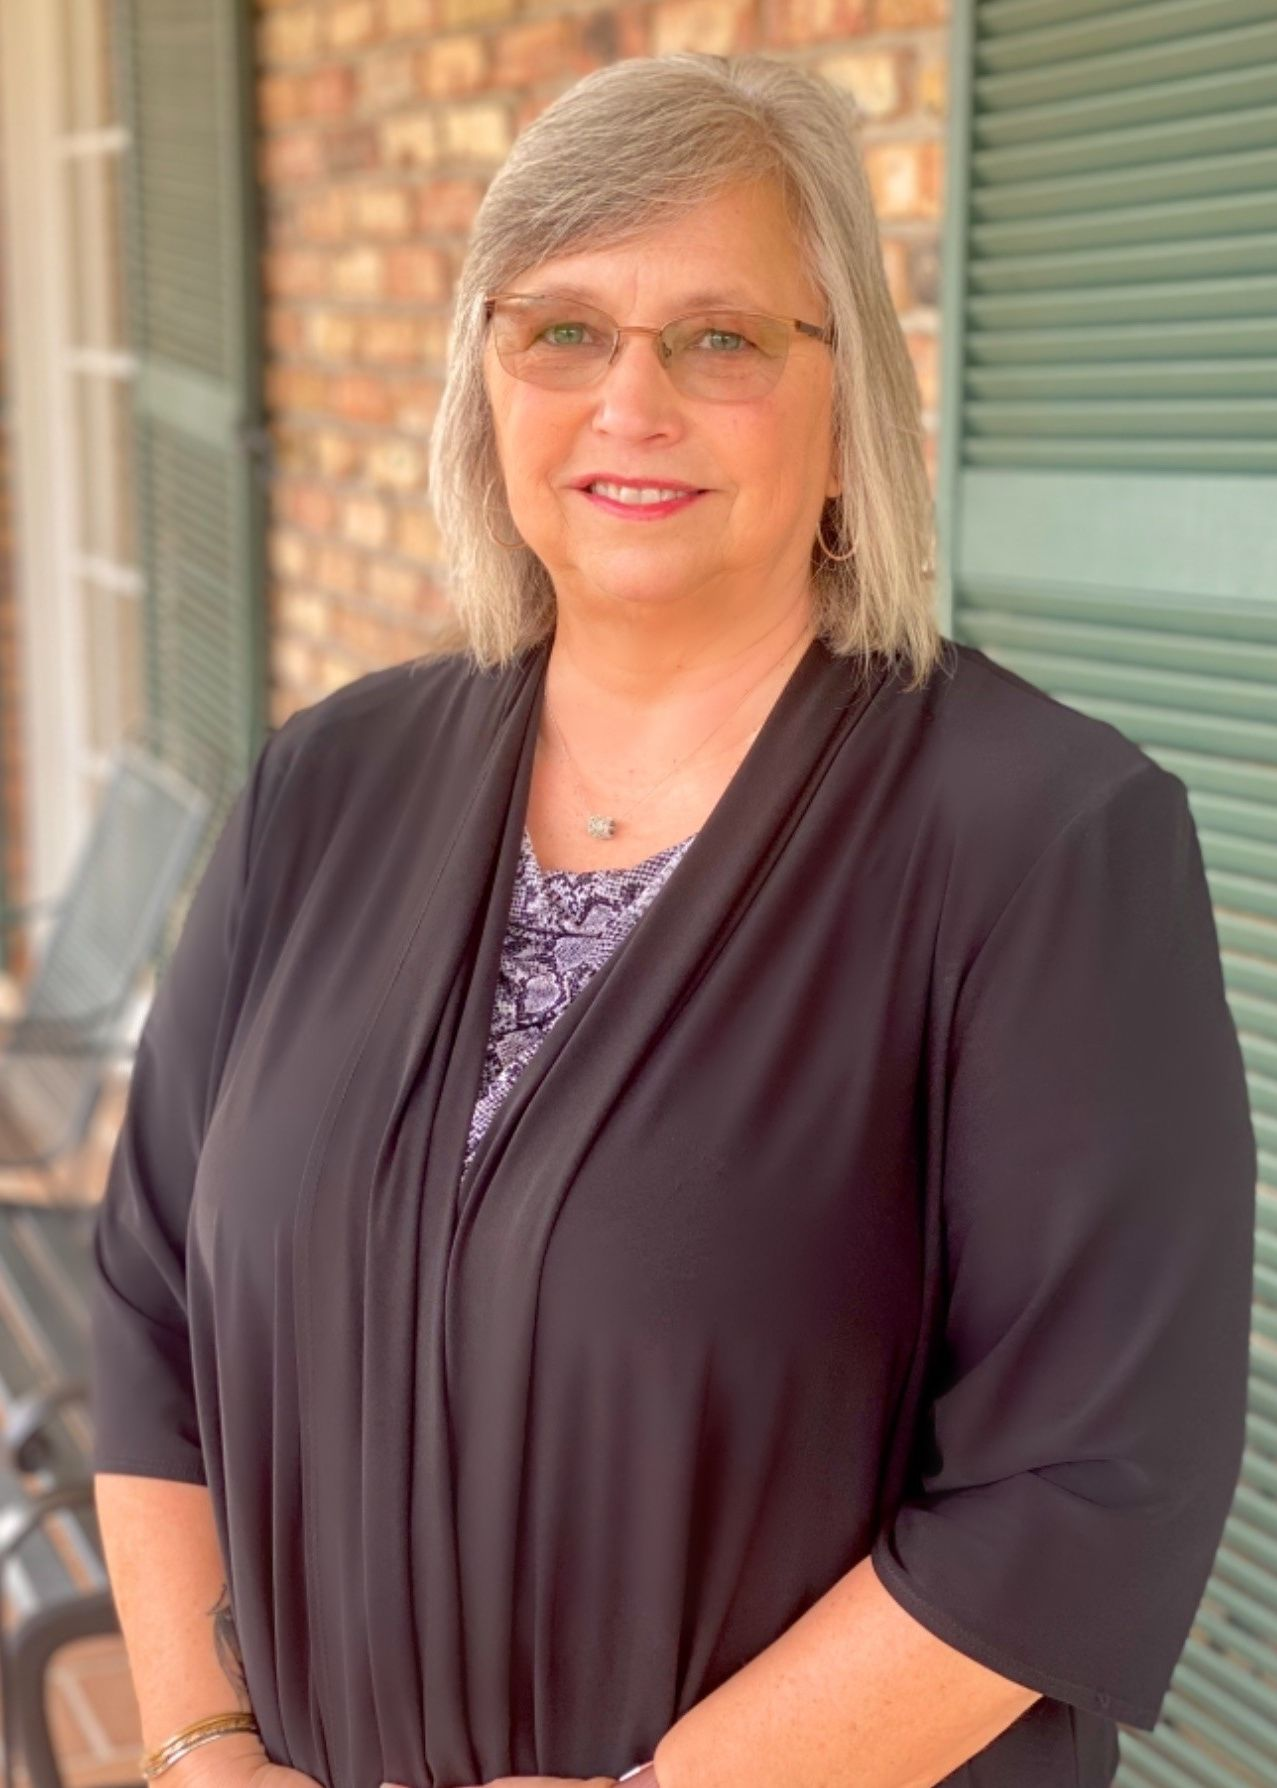 Photo of Denise Morvant - Administrative Assistant